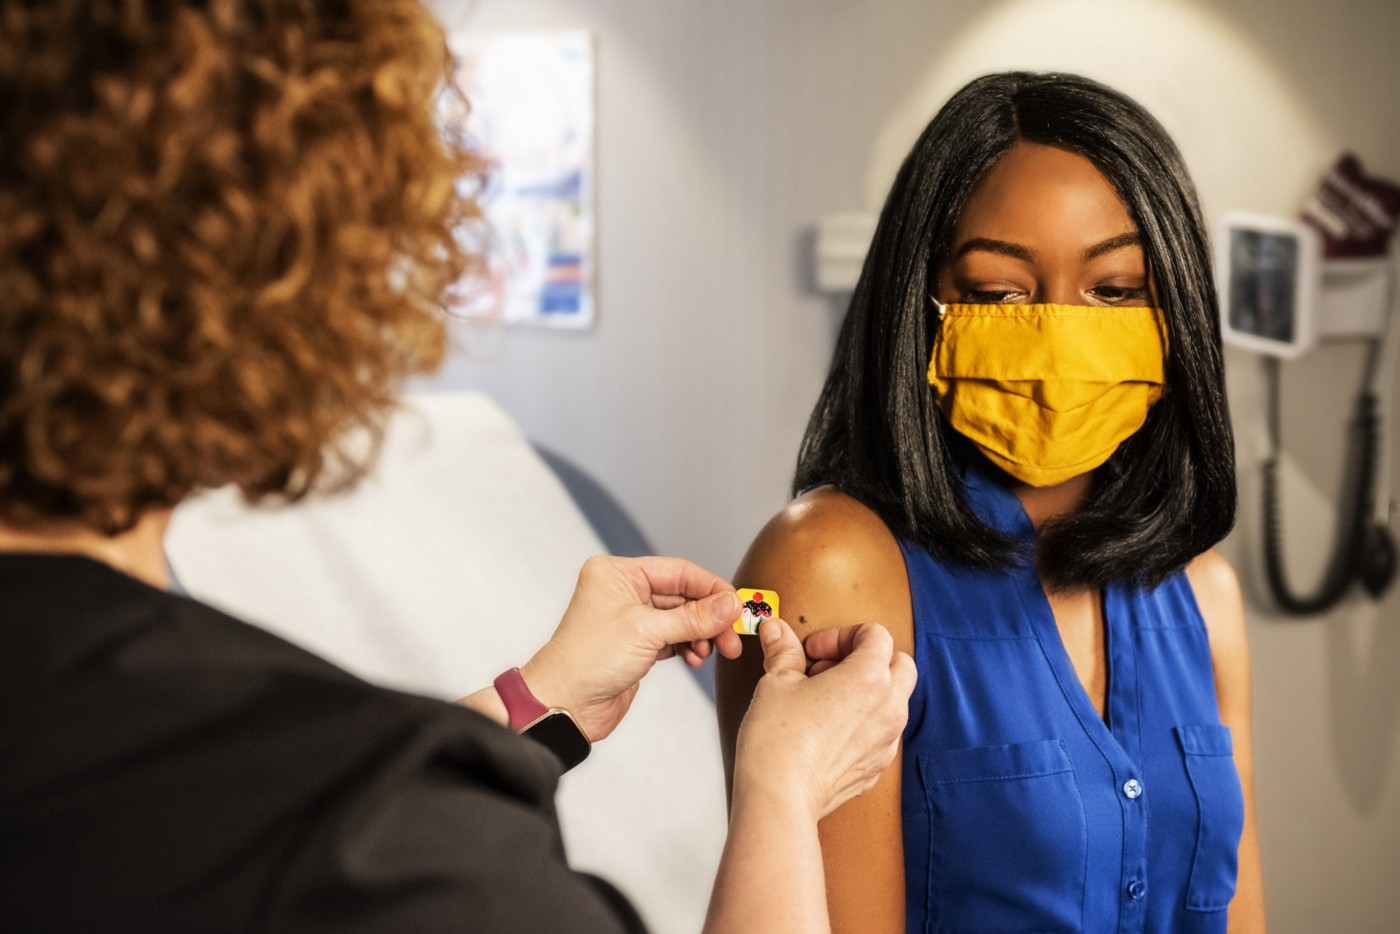 a Black woman wearing a blue sleeveless top receives a bandaid after receiving a vaccination from a white-appearing woman whose face is away from the camera